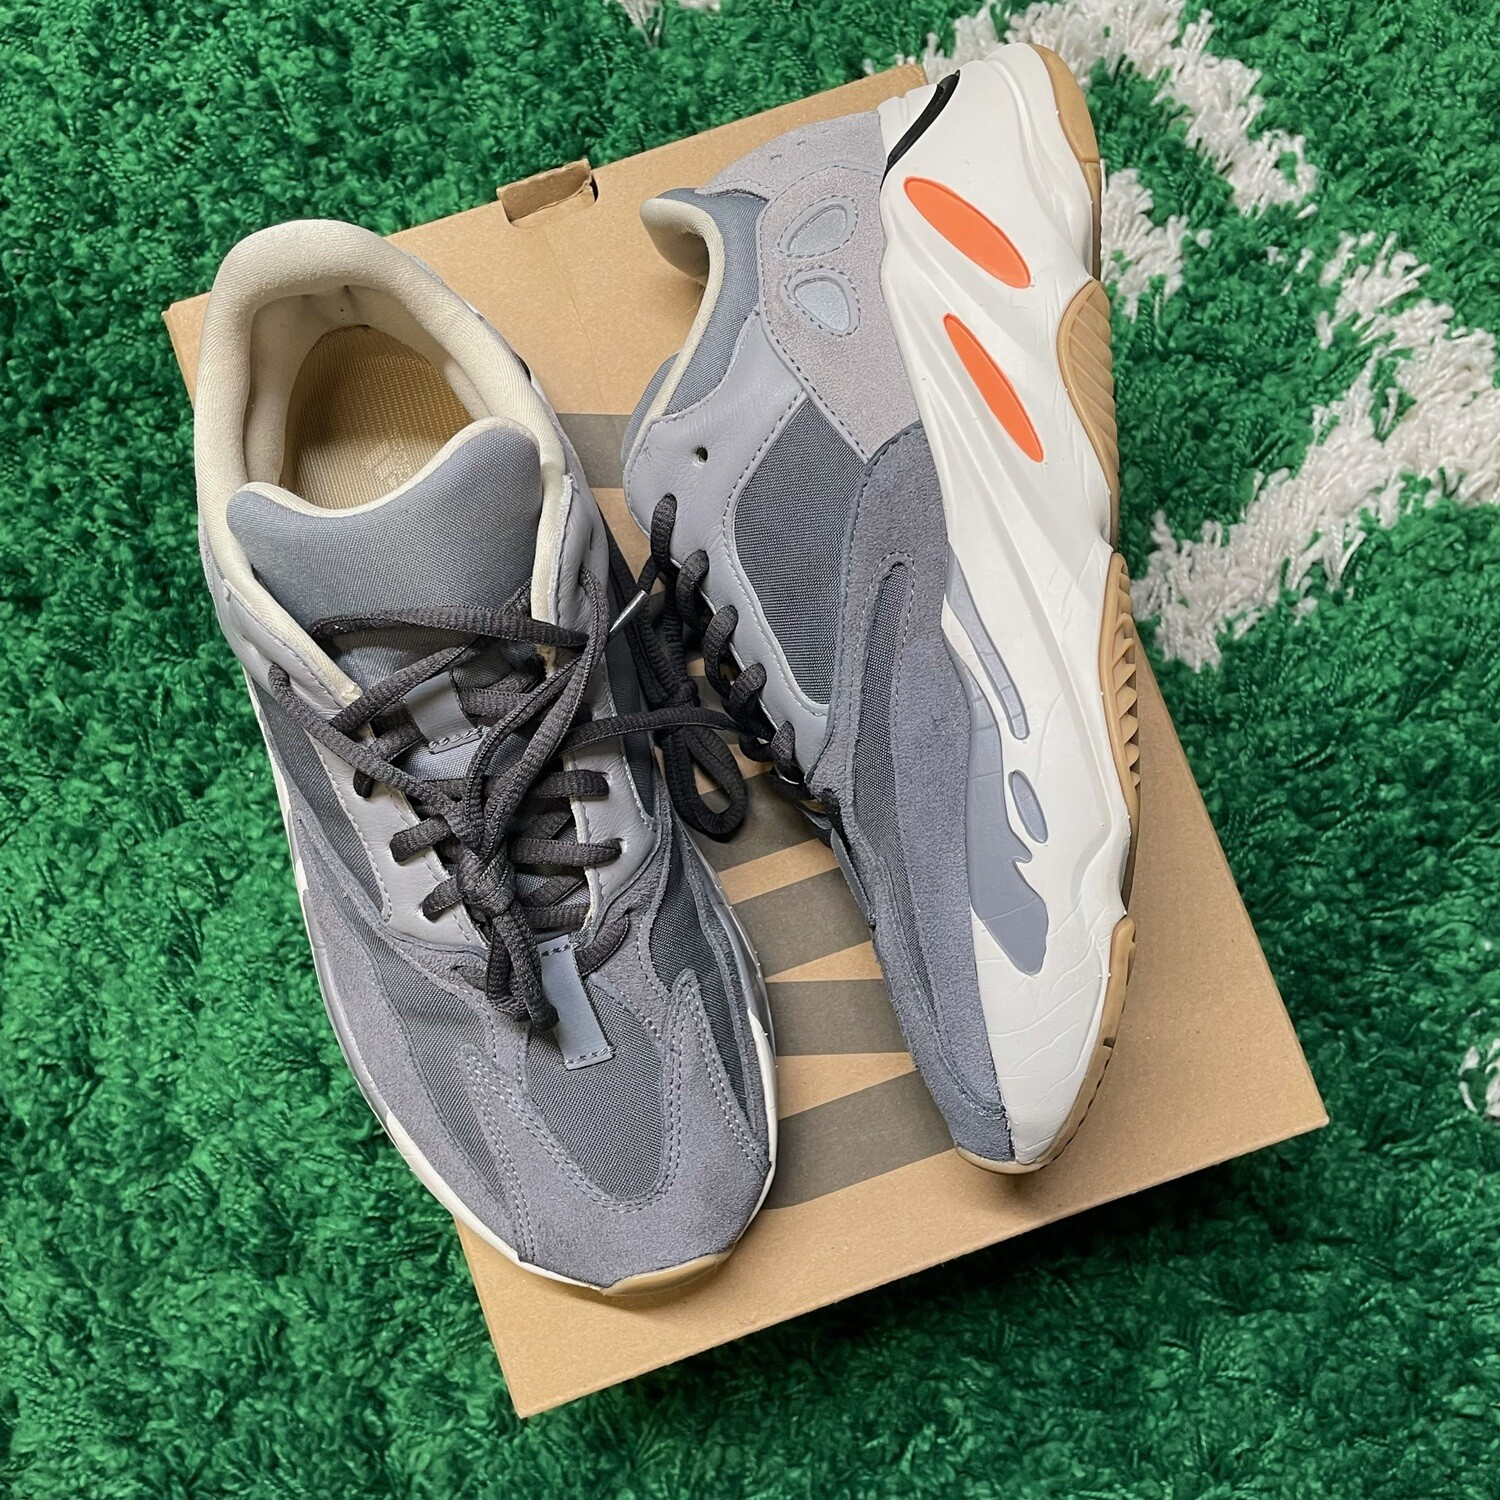 adidas Yeezy Boost 700 Magnet Size 9